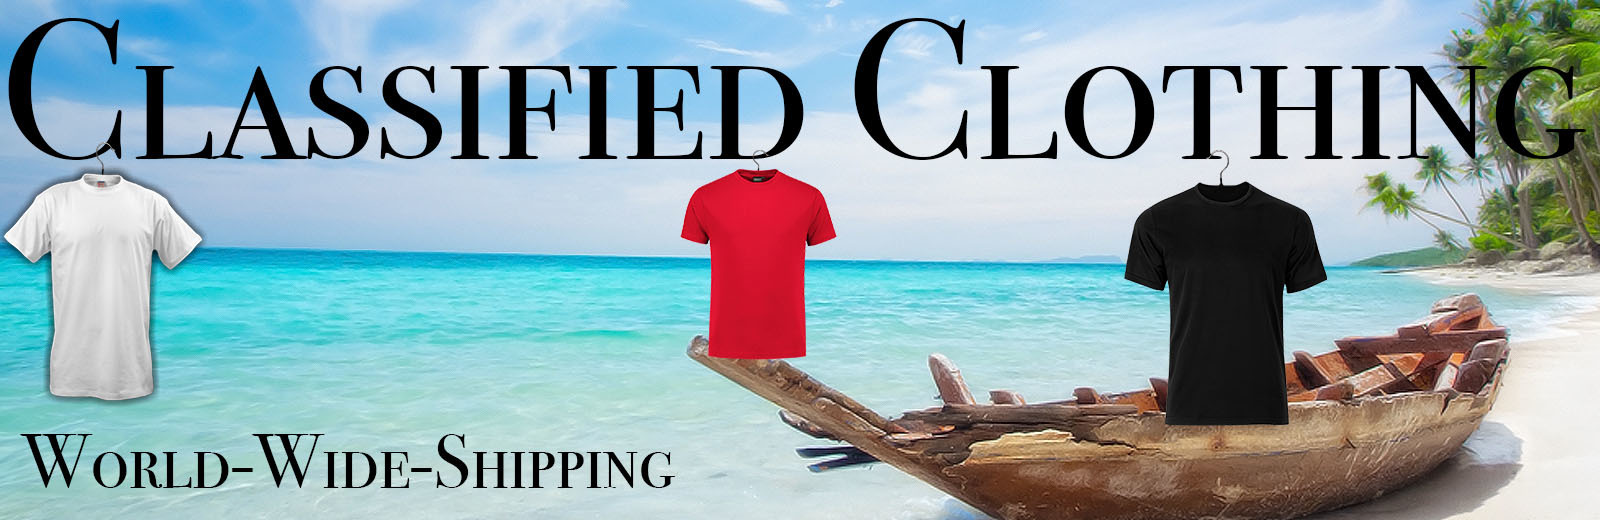 Classified Clothing Store